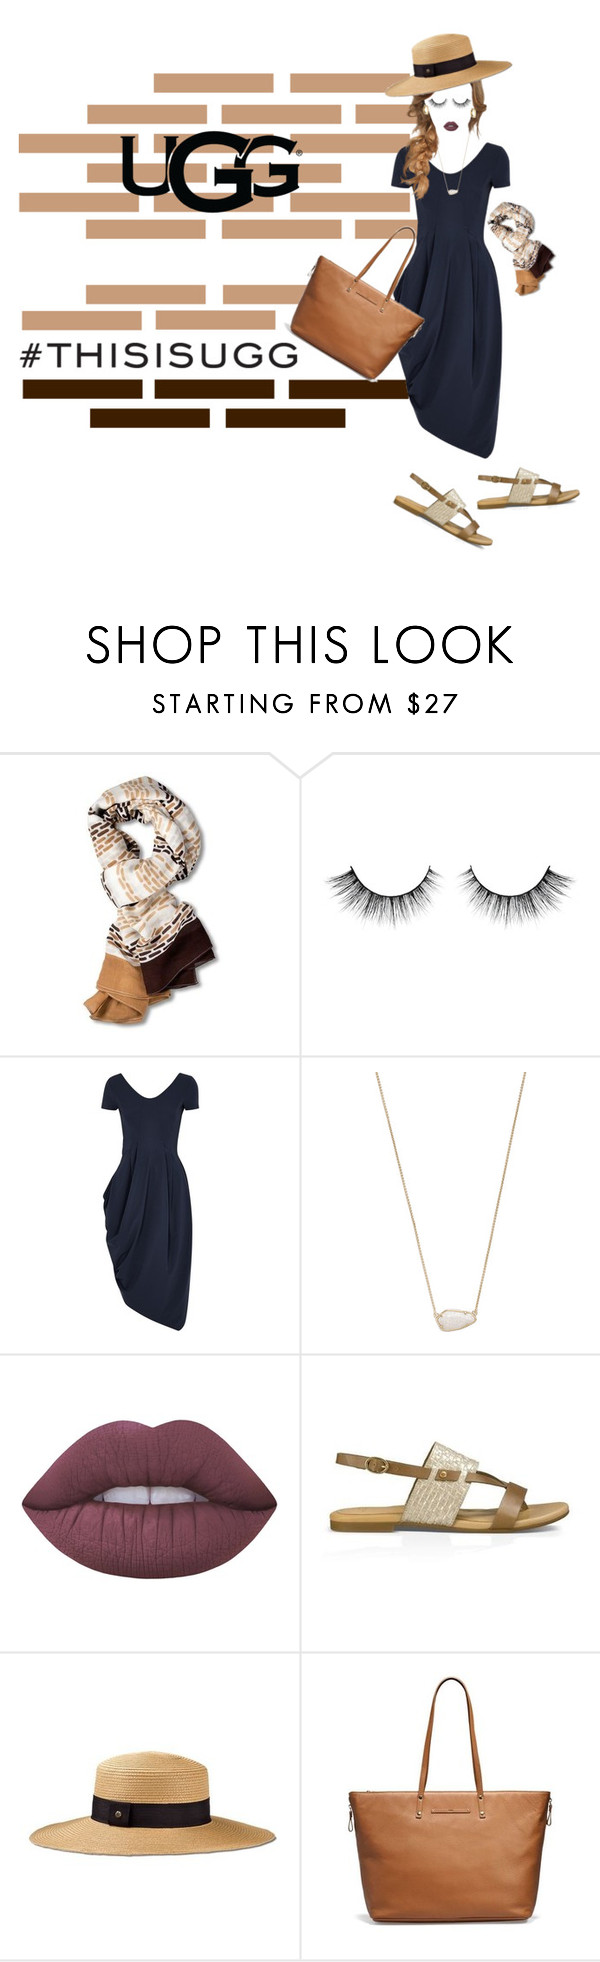 """#thisisugg"" by lala0386 ❤ liked on Polyvore featuring UGG Australia, HIGH, Kendra Scott, Lime Crime and Tiffany & Co."